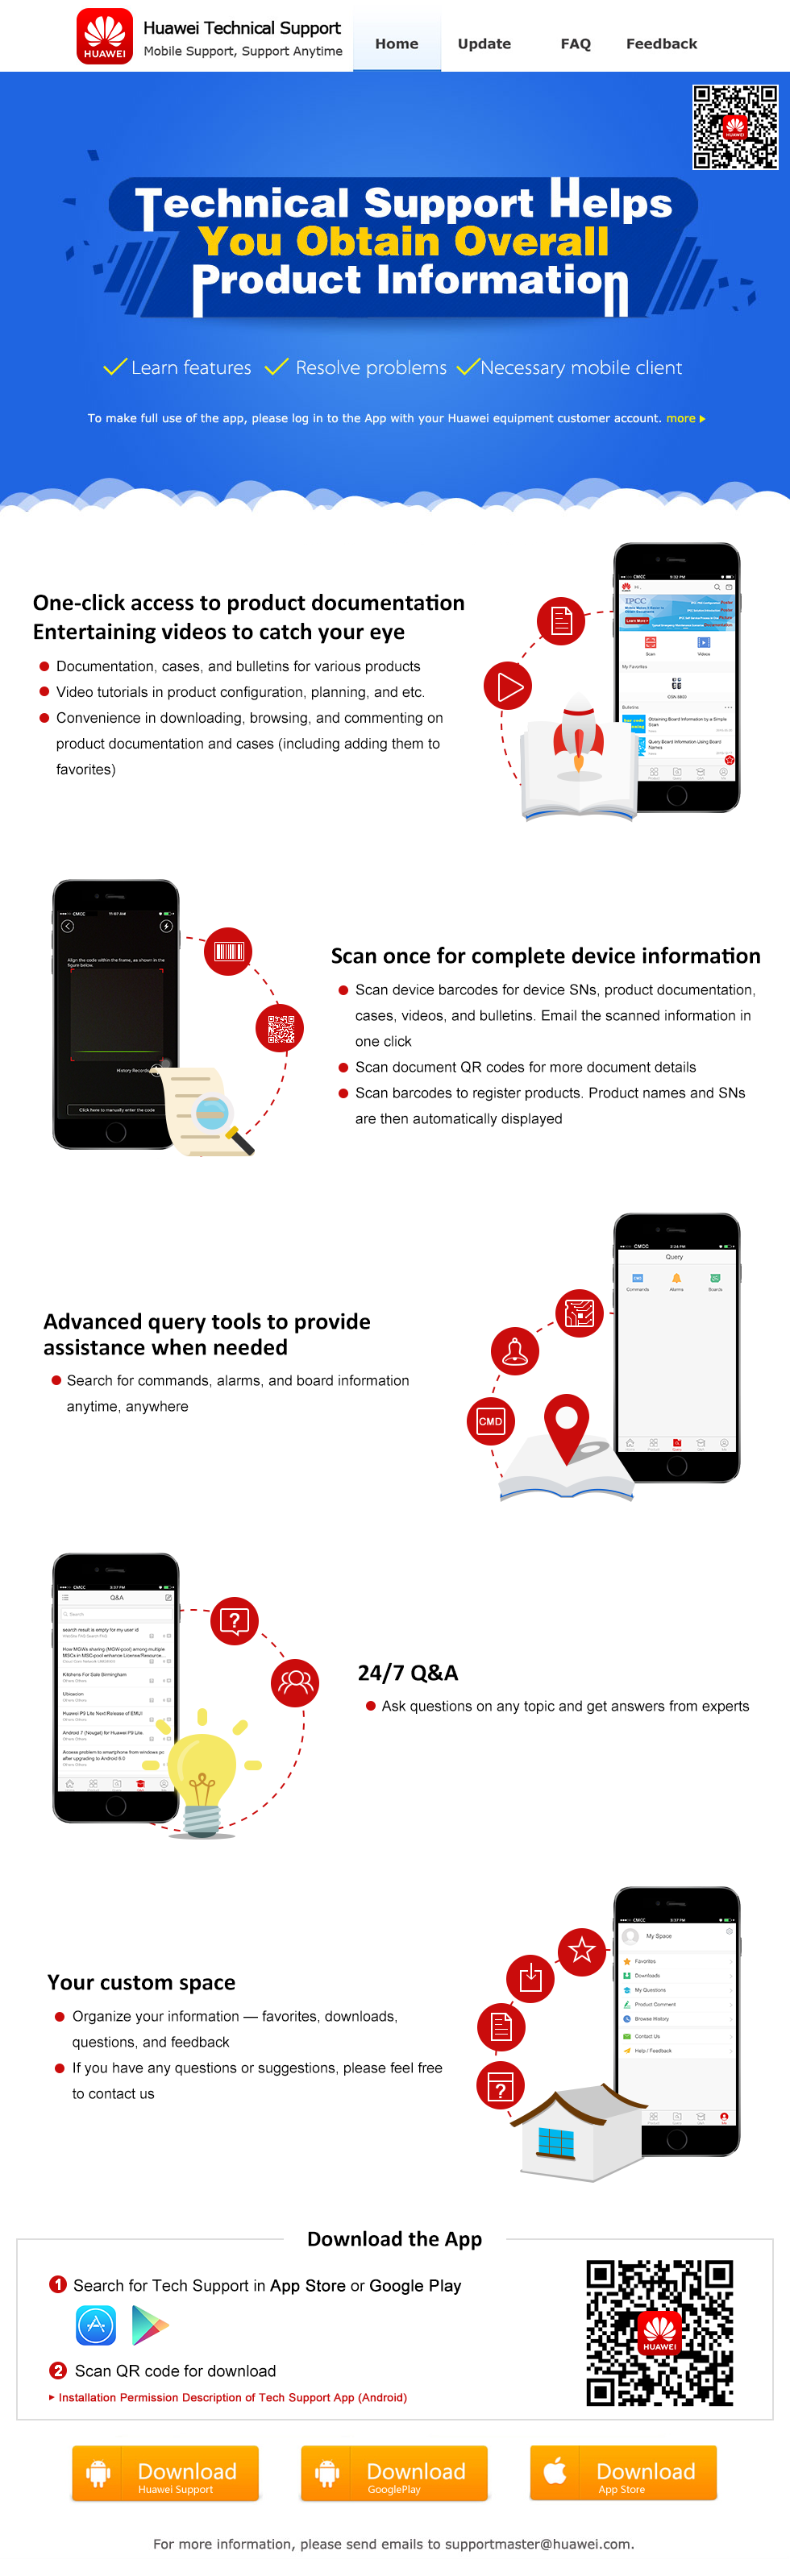 Huawei Techinical Support App,Huawei Support mobile